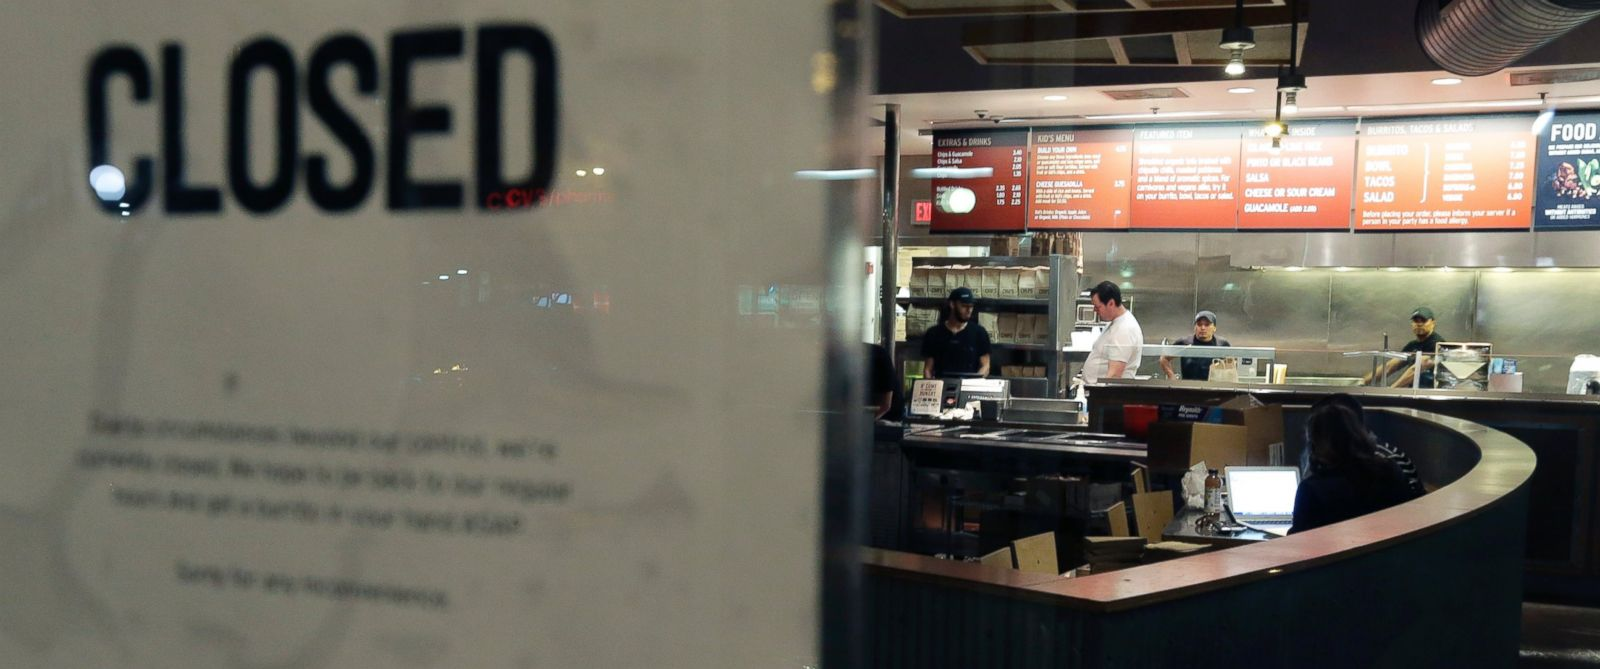 PHOTO:A closed Chipotle restaurant is seen, Dec. 7, 2015, in the Cleveland Circle neighborhood of Boston.